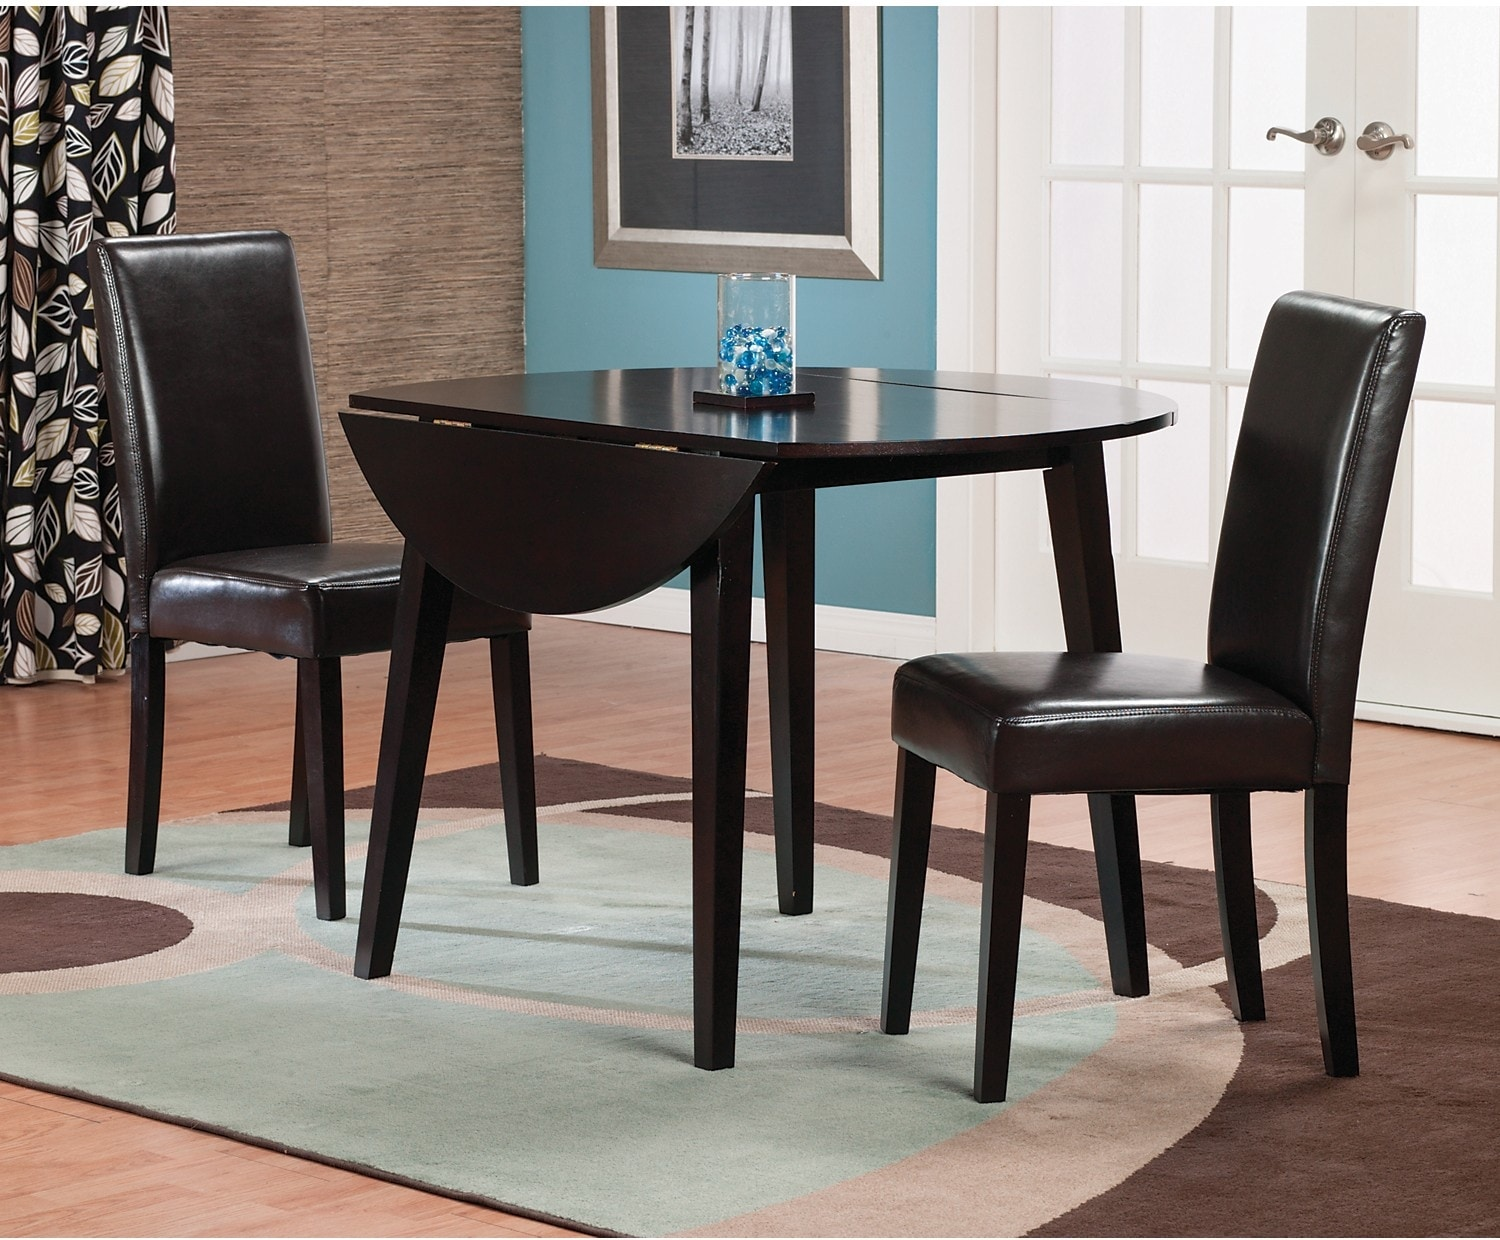 Dakota 3 piece dining package w brown faux leather chairs for Furniture 3 room package